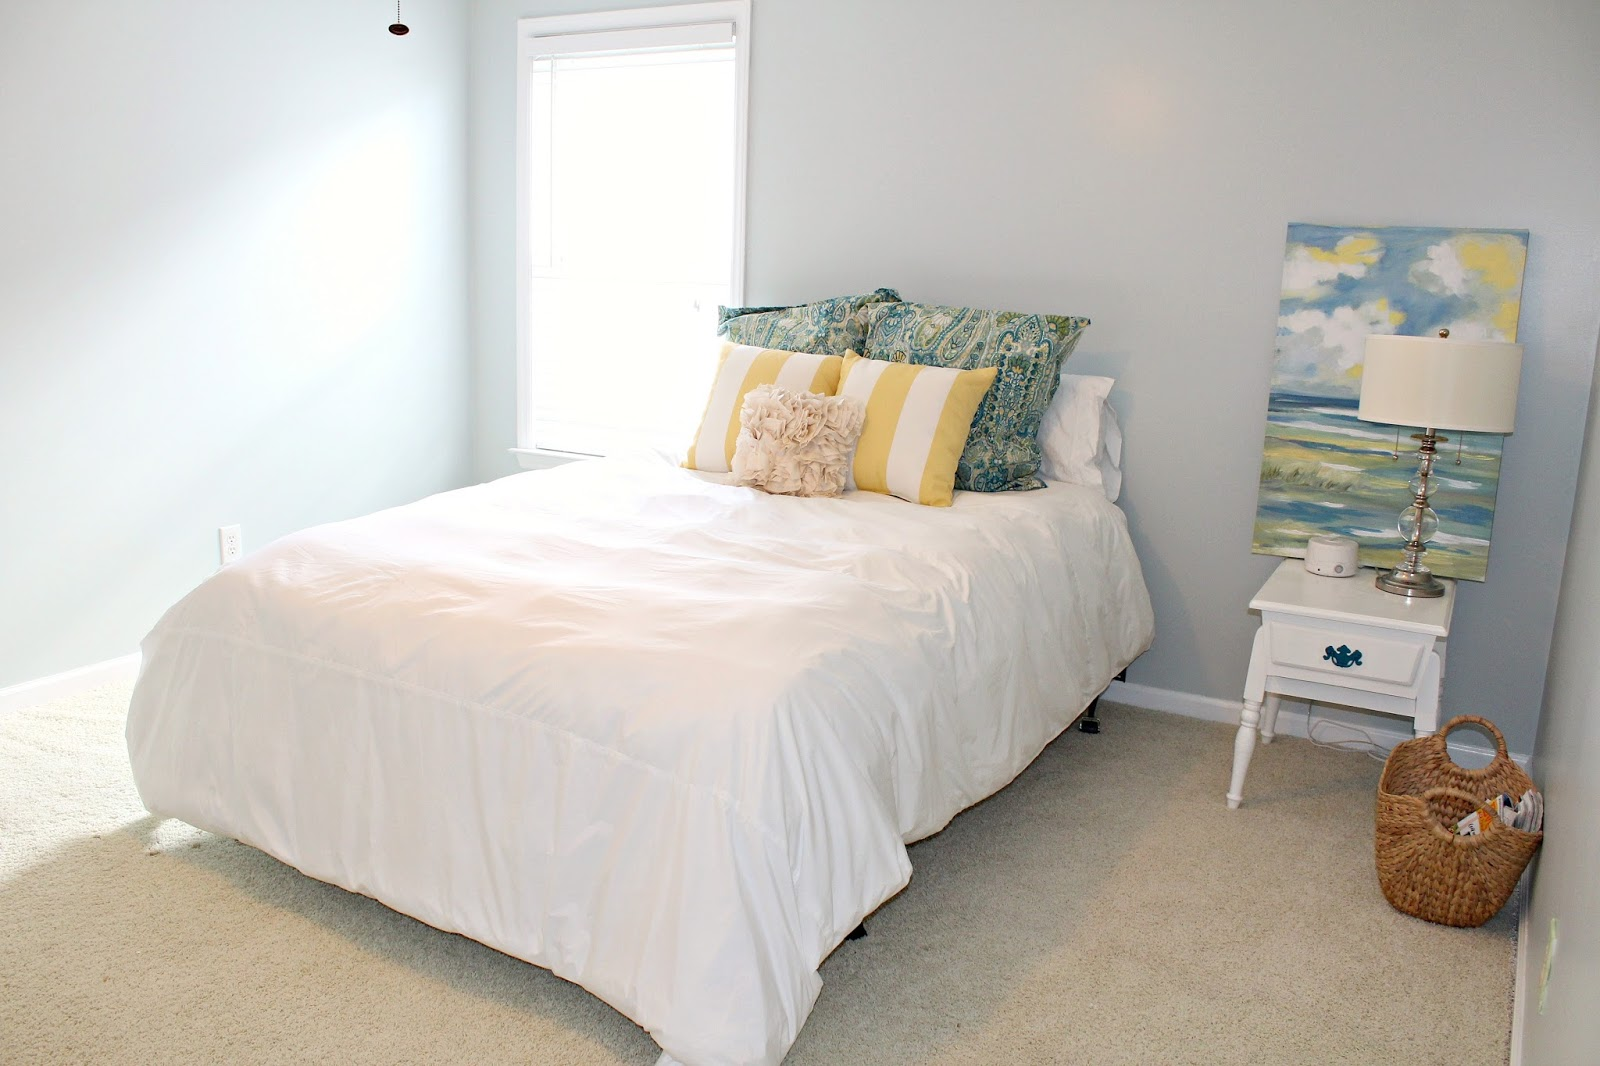 Install Tv Above Fireplace Wiring Gas Carolina On My Mind Guest Bedroom Makeover Part 1 New Brick Outlet